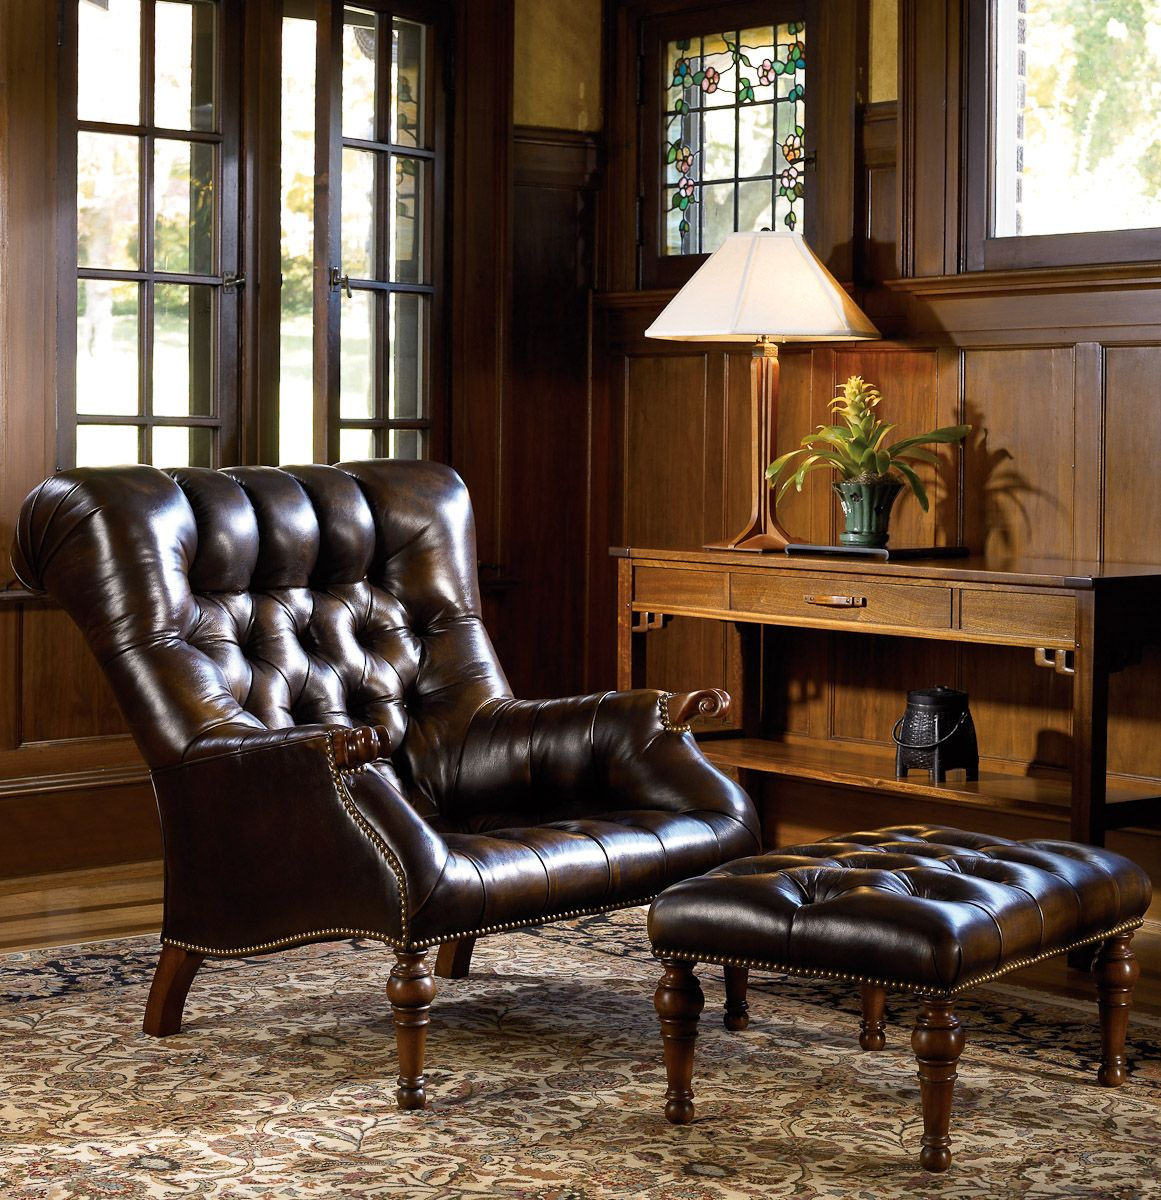 Stickley Leopold Chair For Sale Buy Swing Nz S Named Our Co Founder The Is Based Off Of One His Favorite Designs With Posh Tufting Nail Head